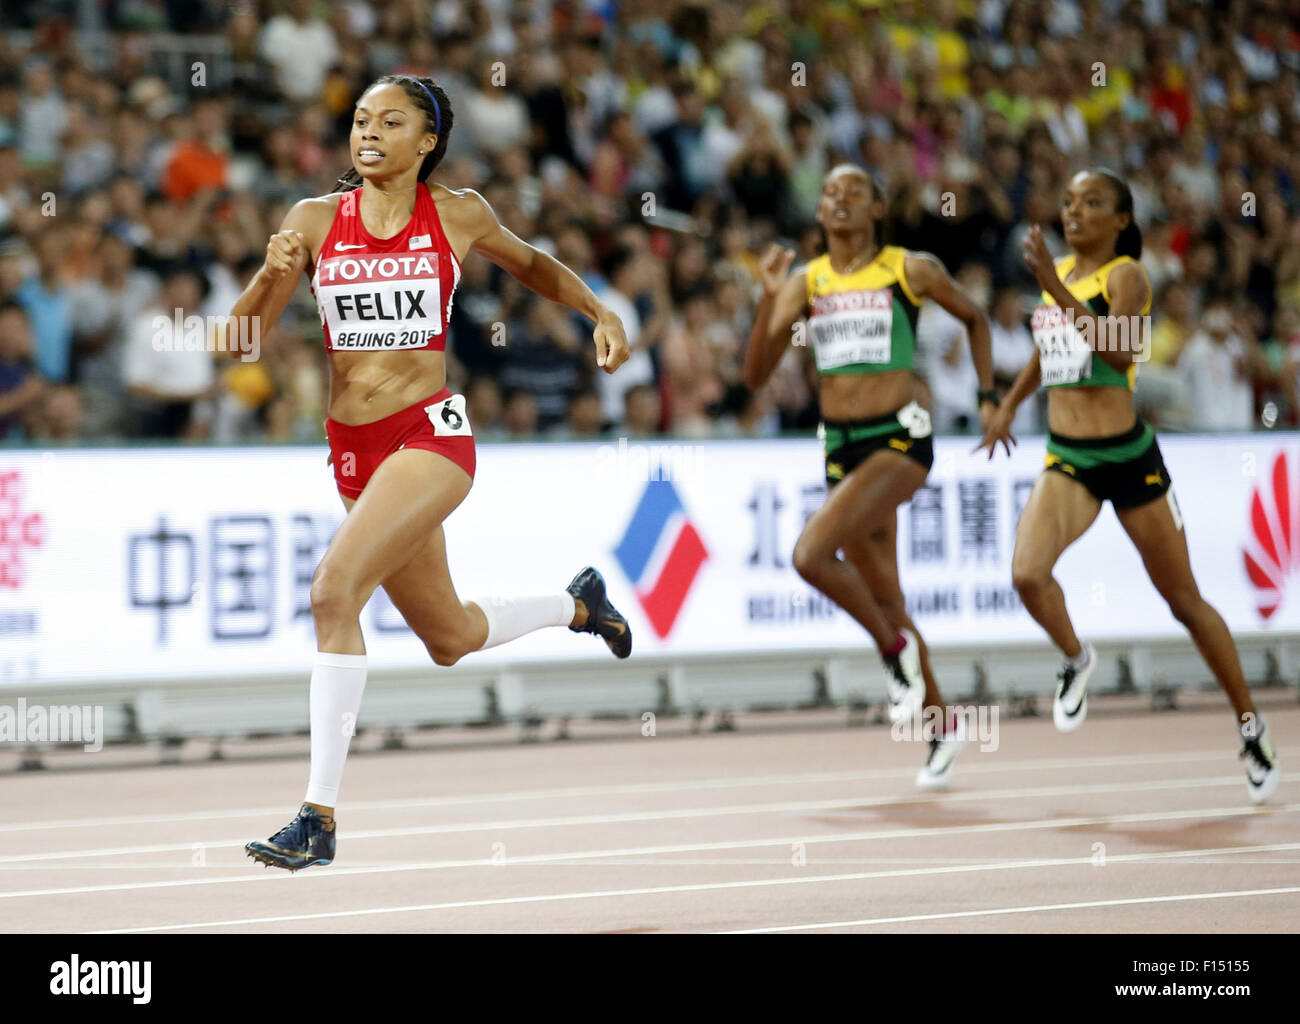 (150827) -- BEIJING, Aug. 27, 2015 (Xinhua) -- Allyson Felix of the United States competes during the women's - Stock Image